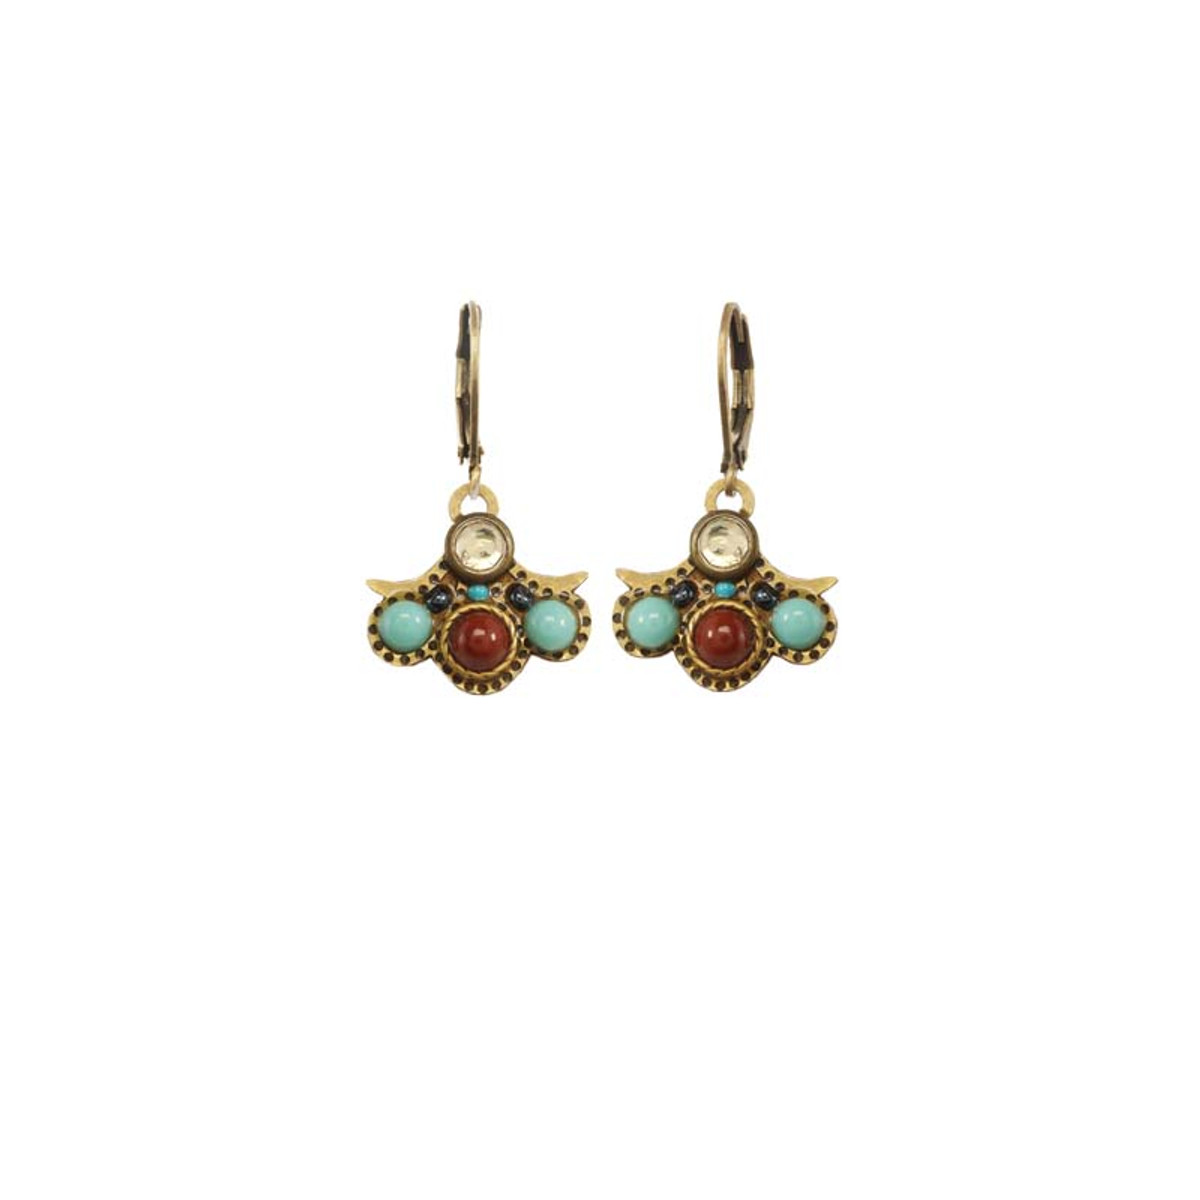 Gold Michal Golan Jewelry Southwest Style Earrings